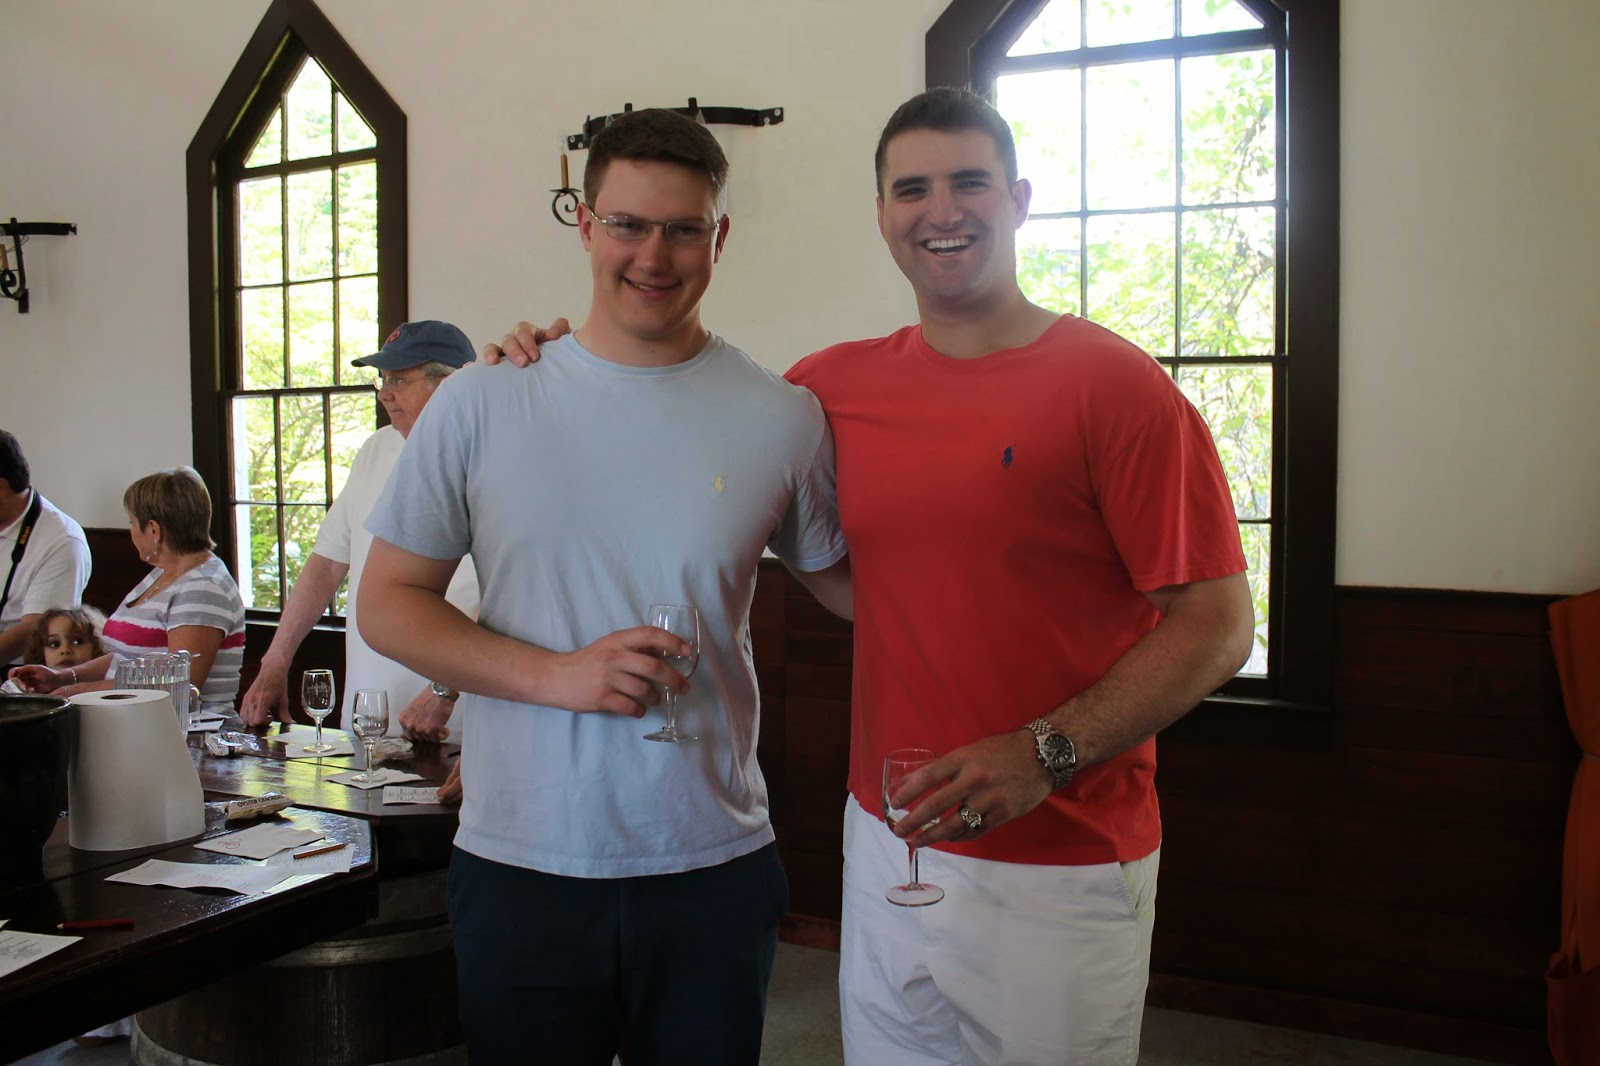 Brotherhood Winery tasting room - two soon to be West Point graduates